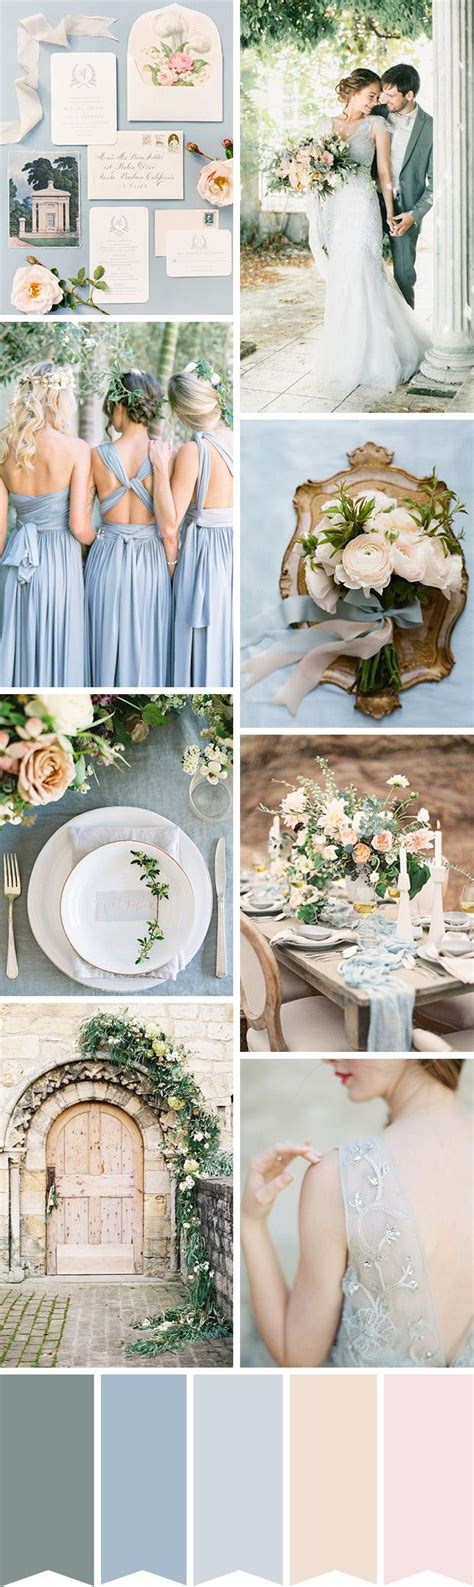 classic color schemes best 25 peach wedding colors ideas on pinterest peach wedding theme wedding colour themes